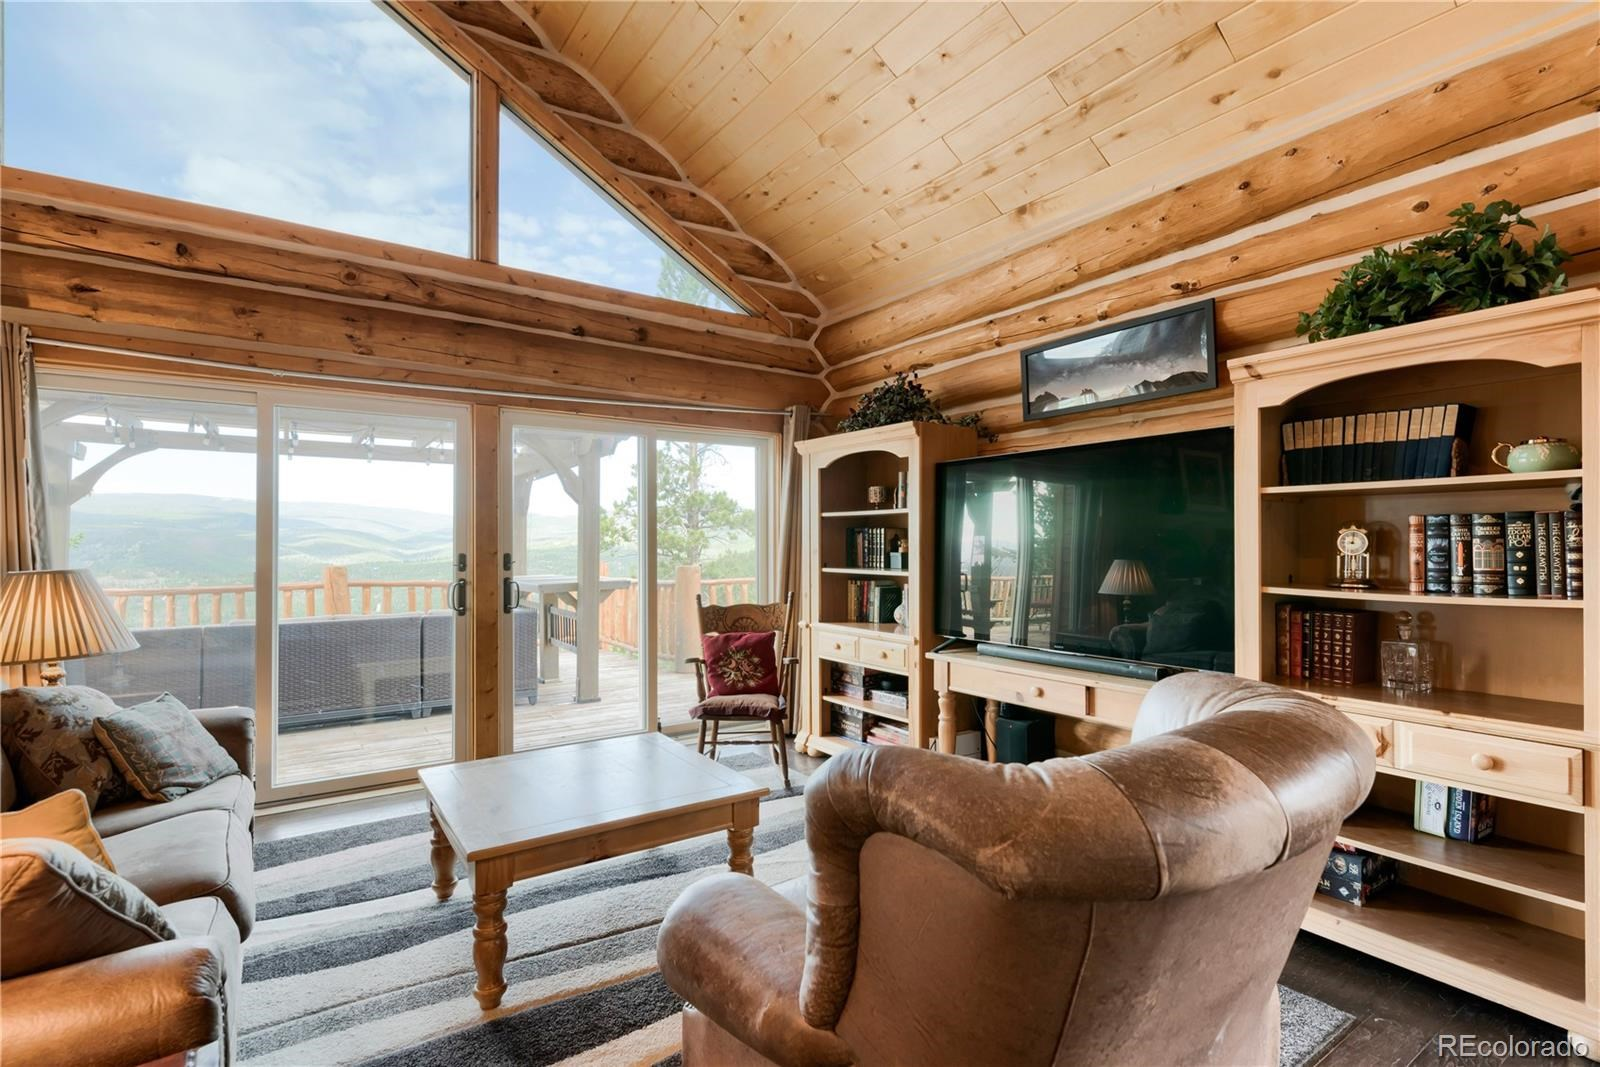 MLS# 3602520 - 8 - 107 Piegan Court, Red Feather Lakes, CO 80545